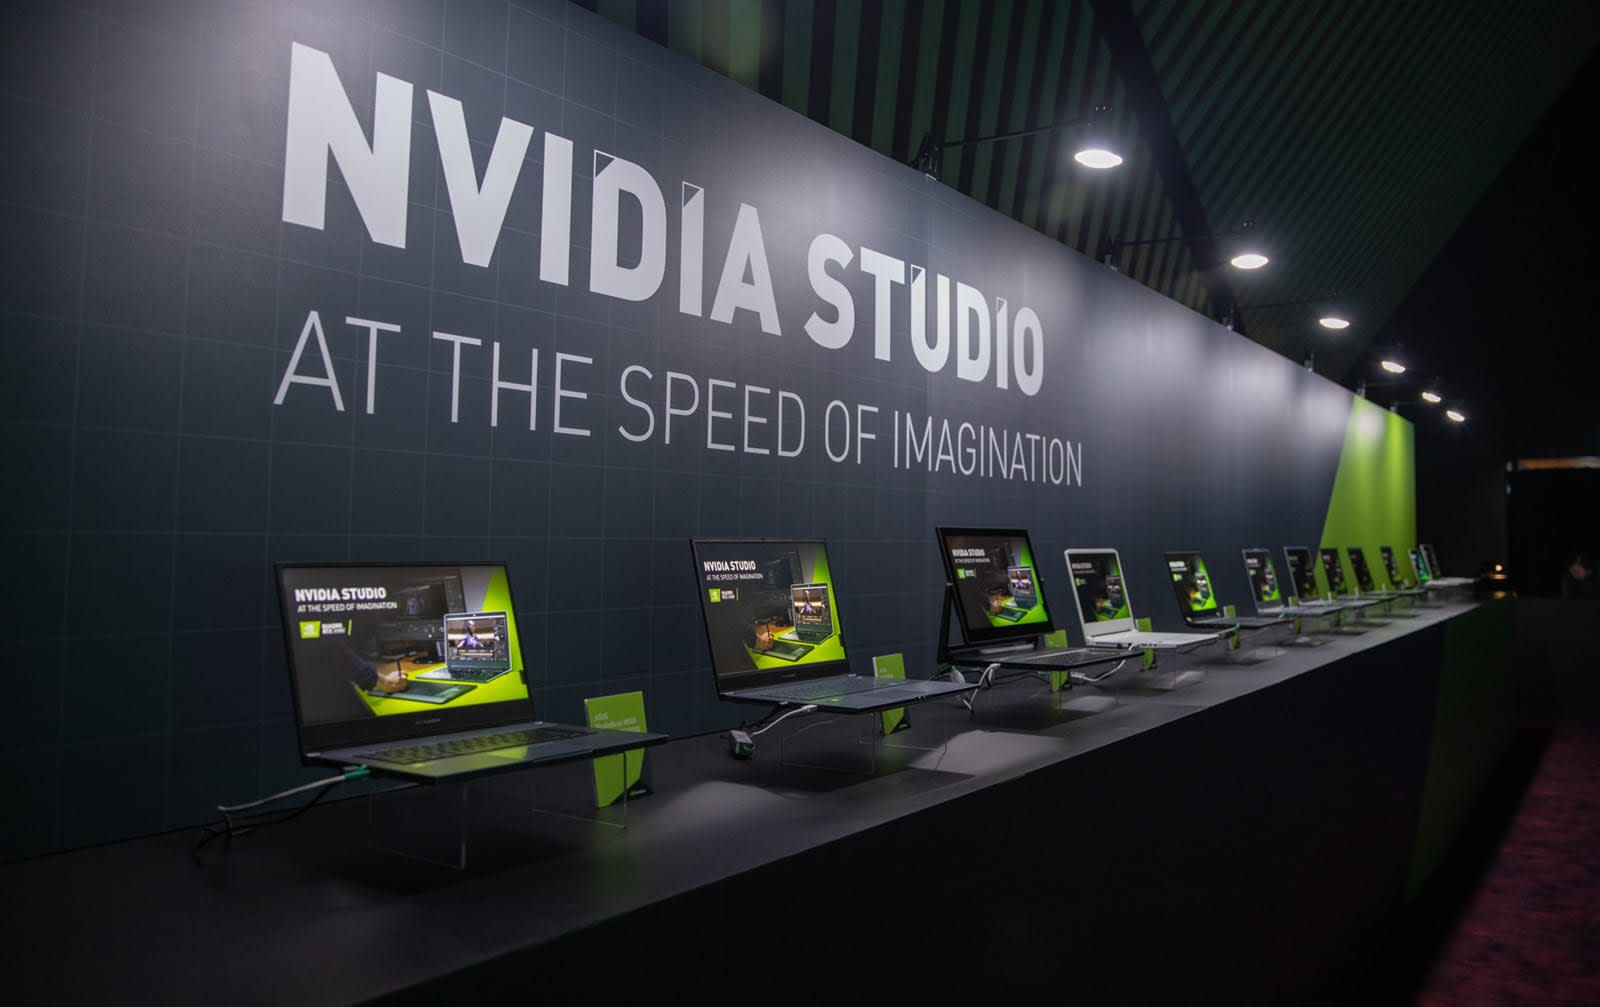 NVIDIA's GeForce RTX GPUs are now even better for creative types